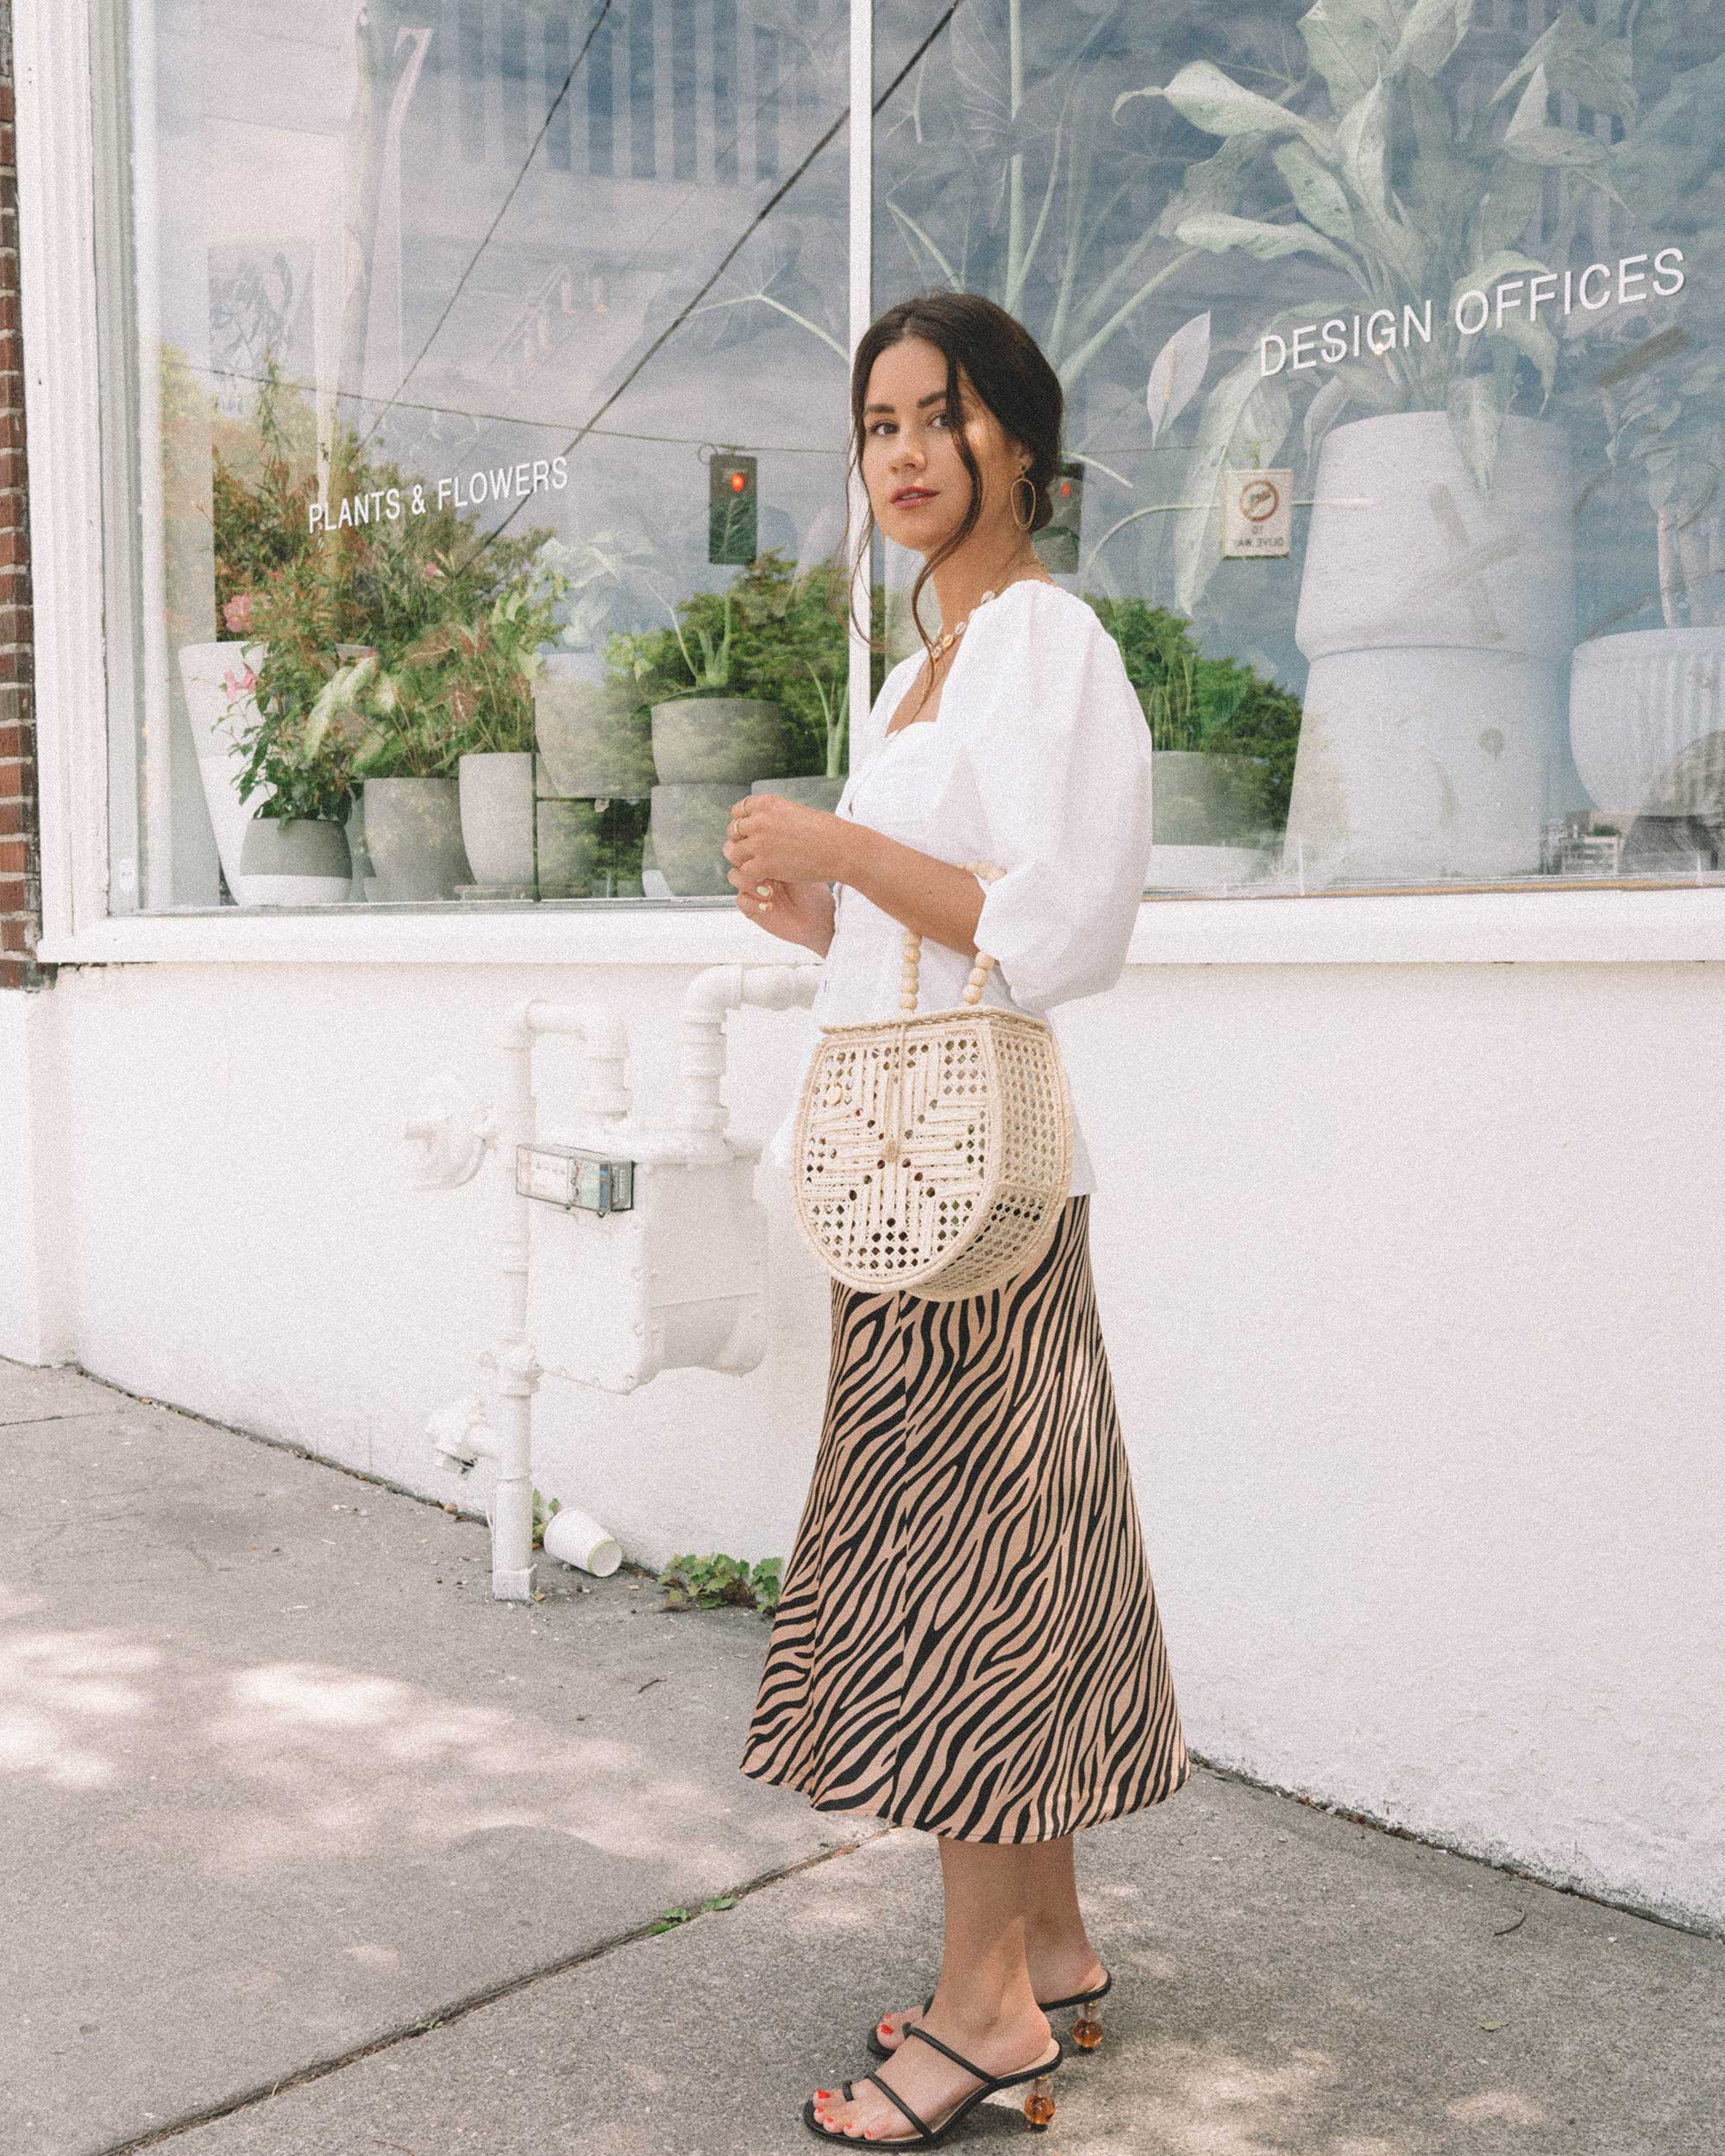 Sarah Butler of Sarah Styles Seattle  wearing GANNI Puff Sleeve Top and leopard skirt in Seattle  | @sarahchristine - 13.jpg